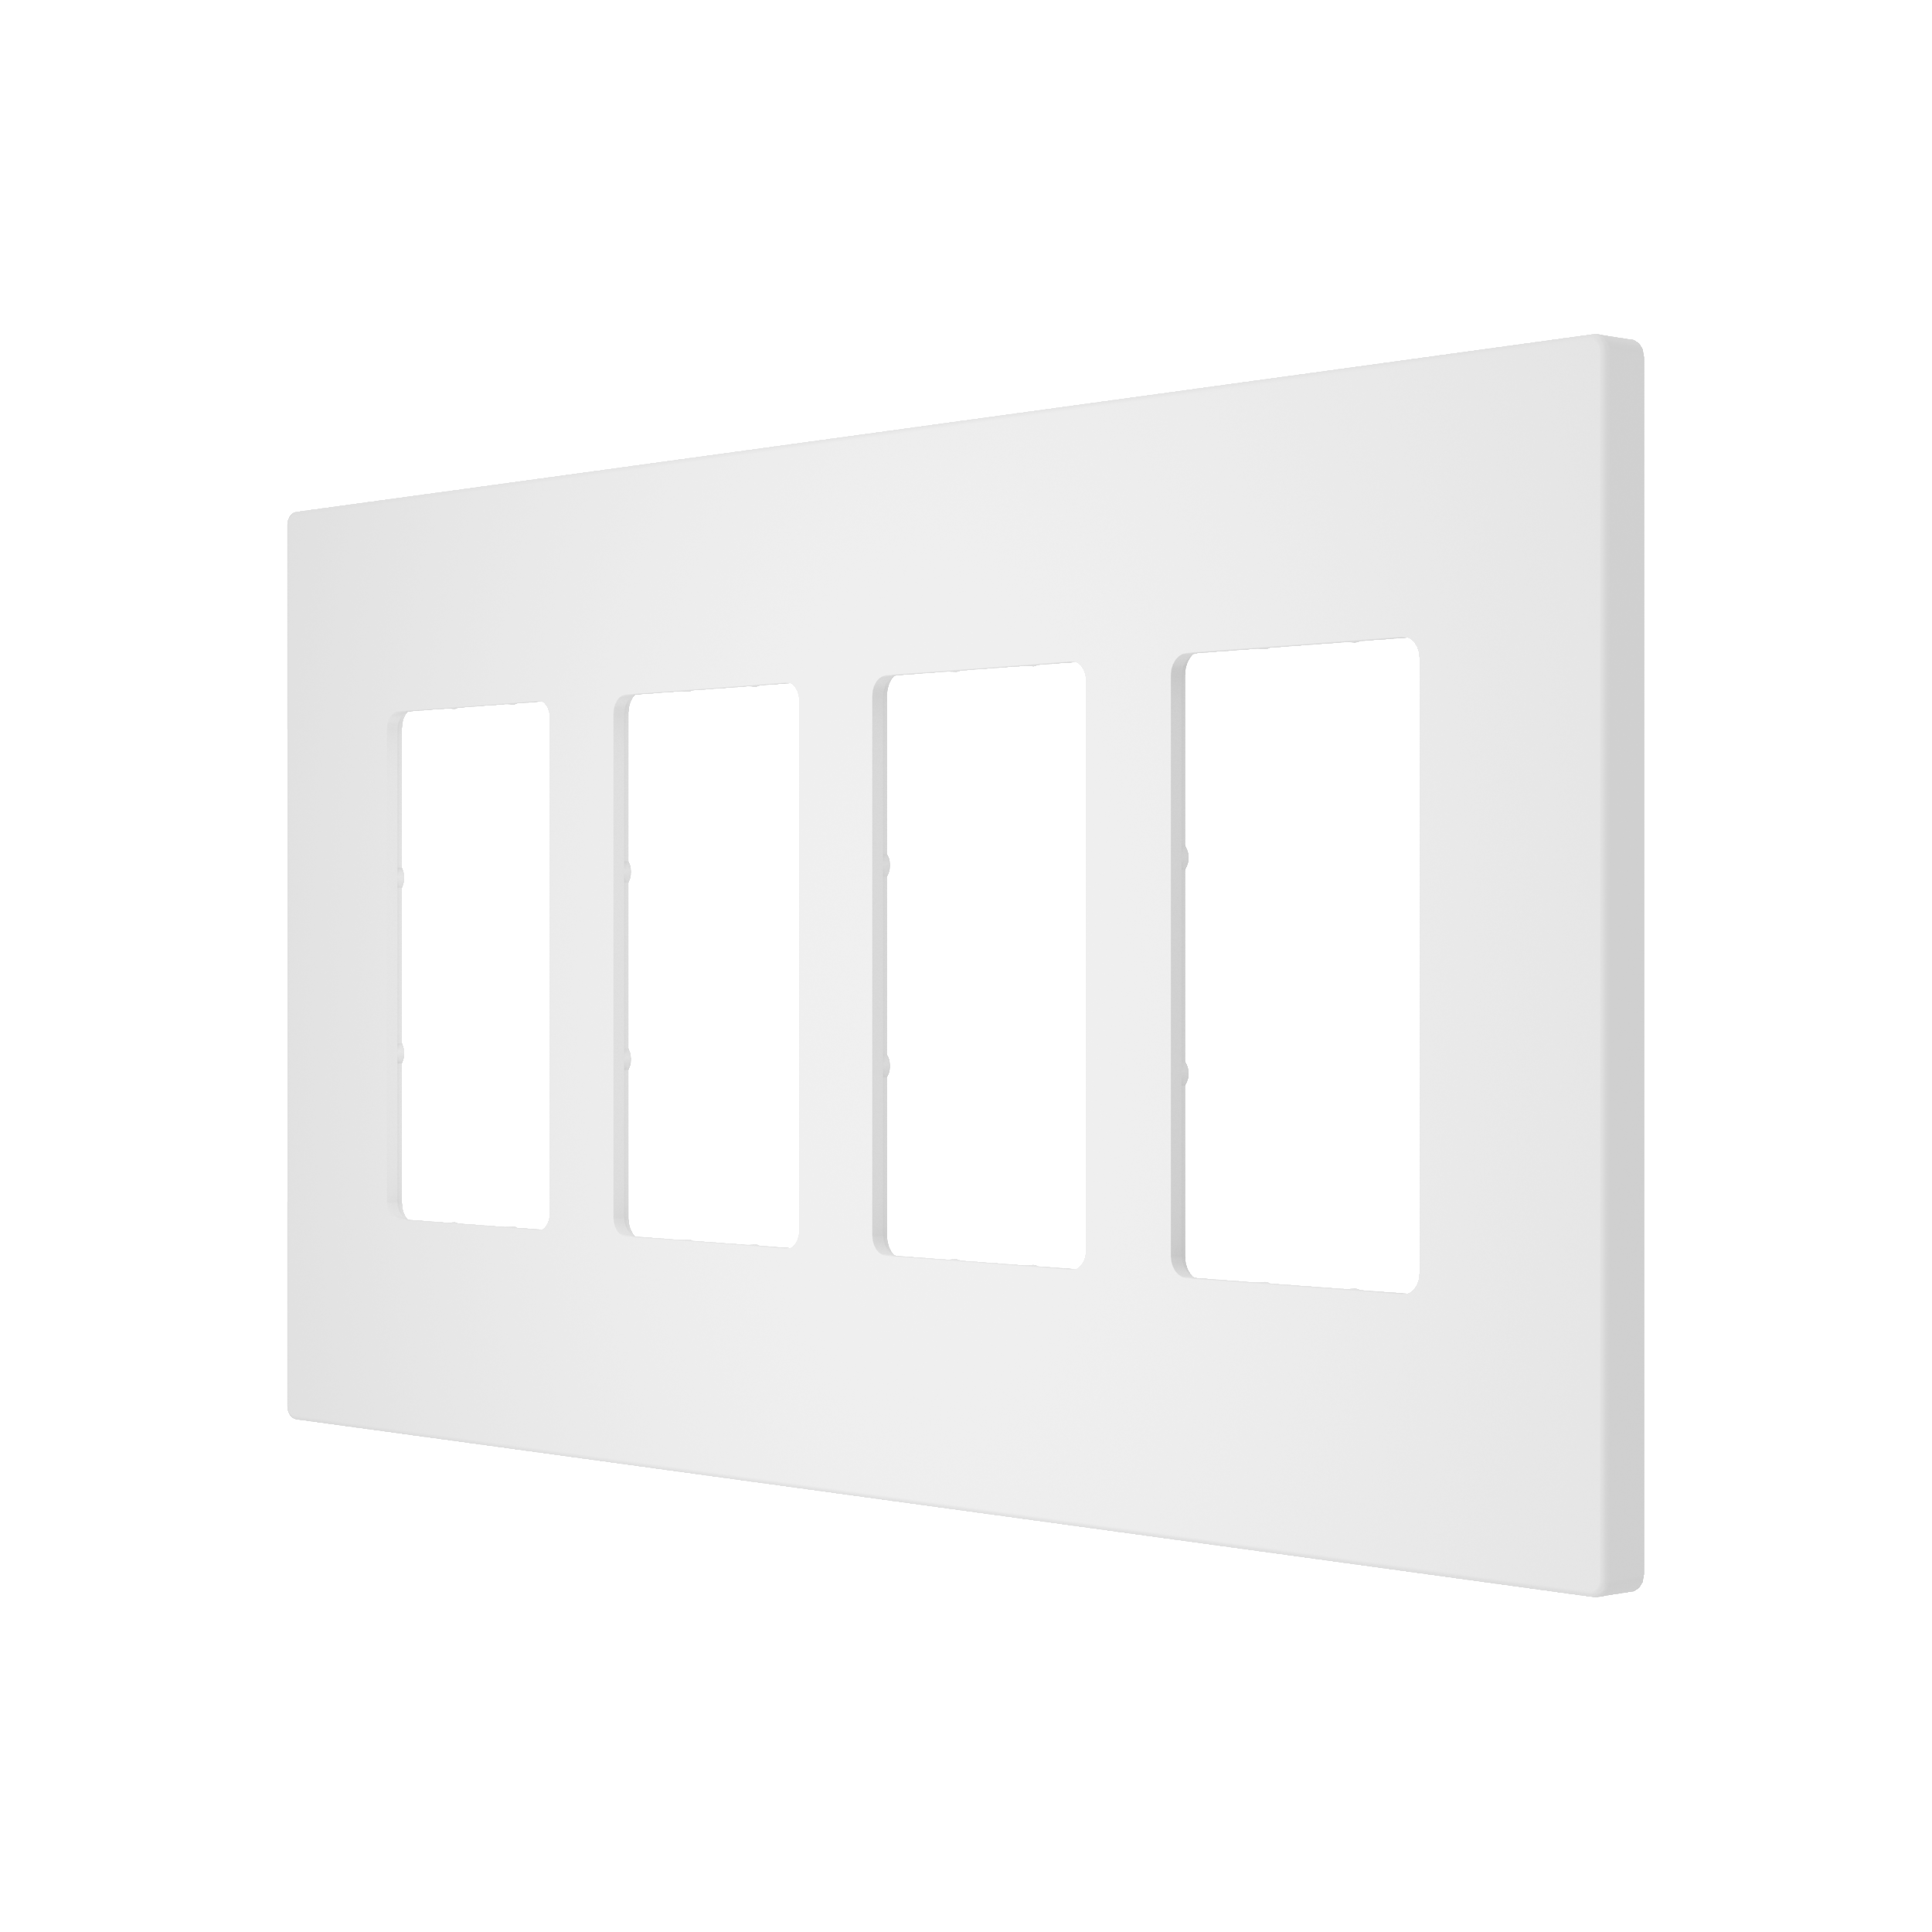 Wall Plate (4-Gang) 02.png